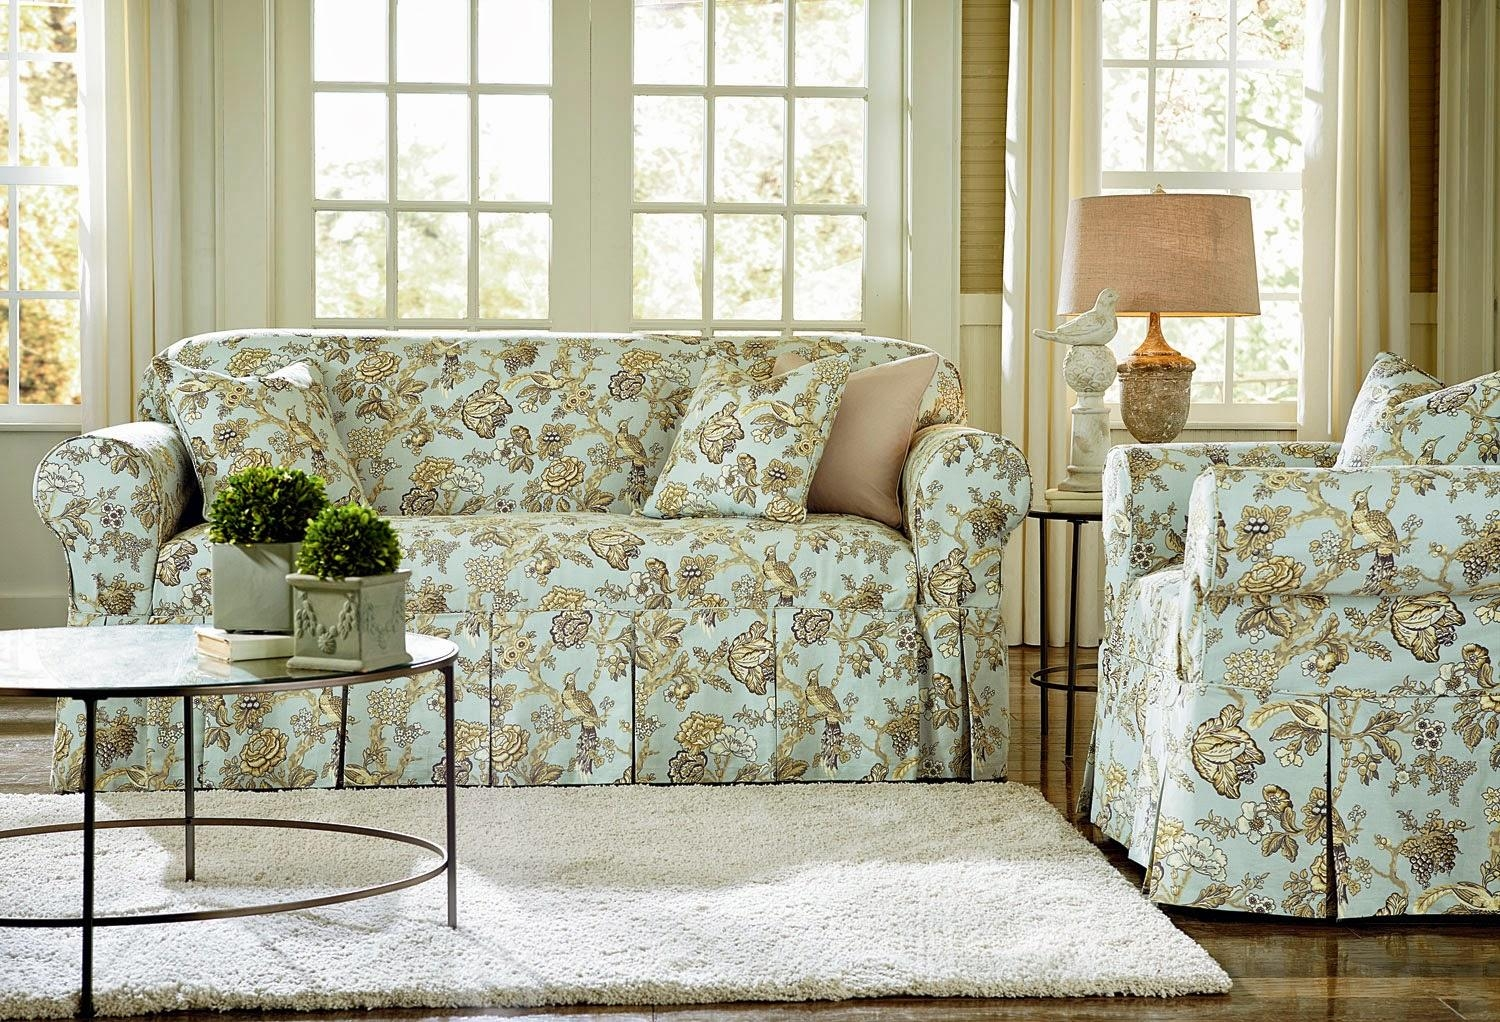 Sure Fit Slipcovers Blog For Floral Slipcovers (View 2 of 20)